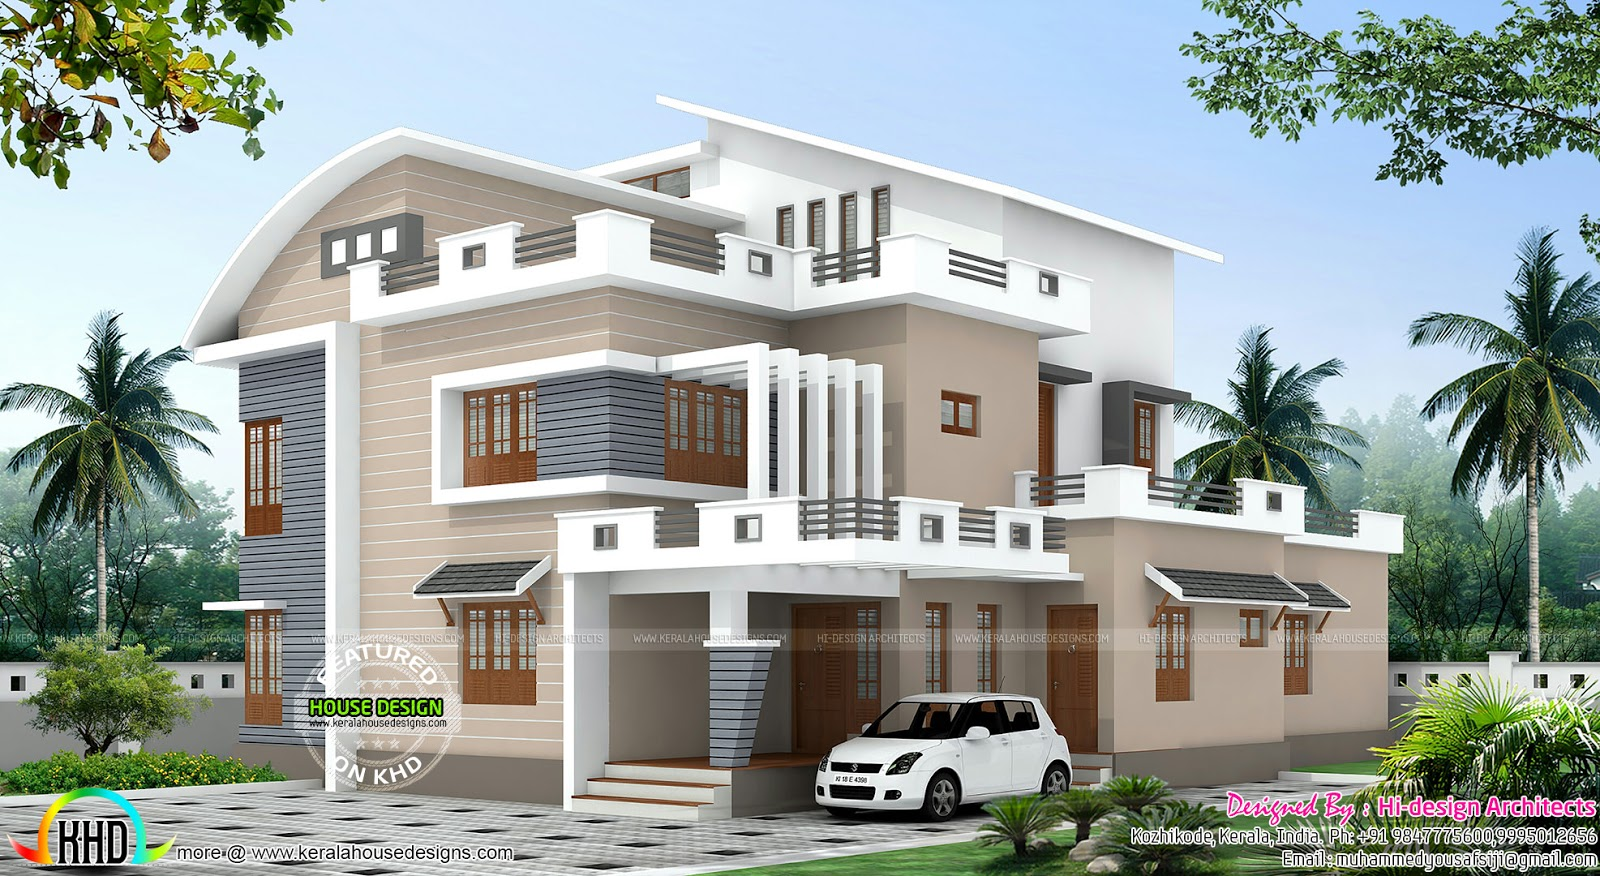 4 bedroom modern mix house plan kerala home design and for Modern 4 bedroom house floor plans